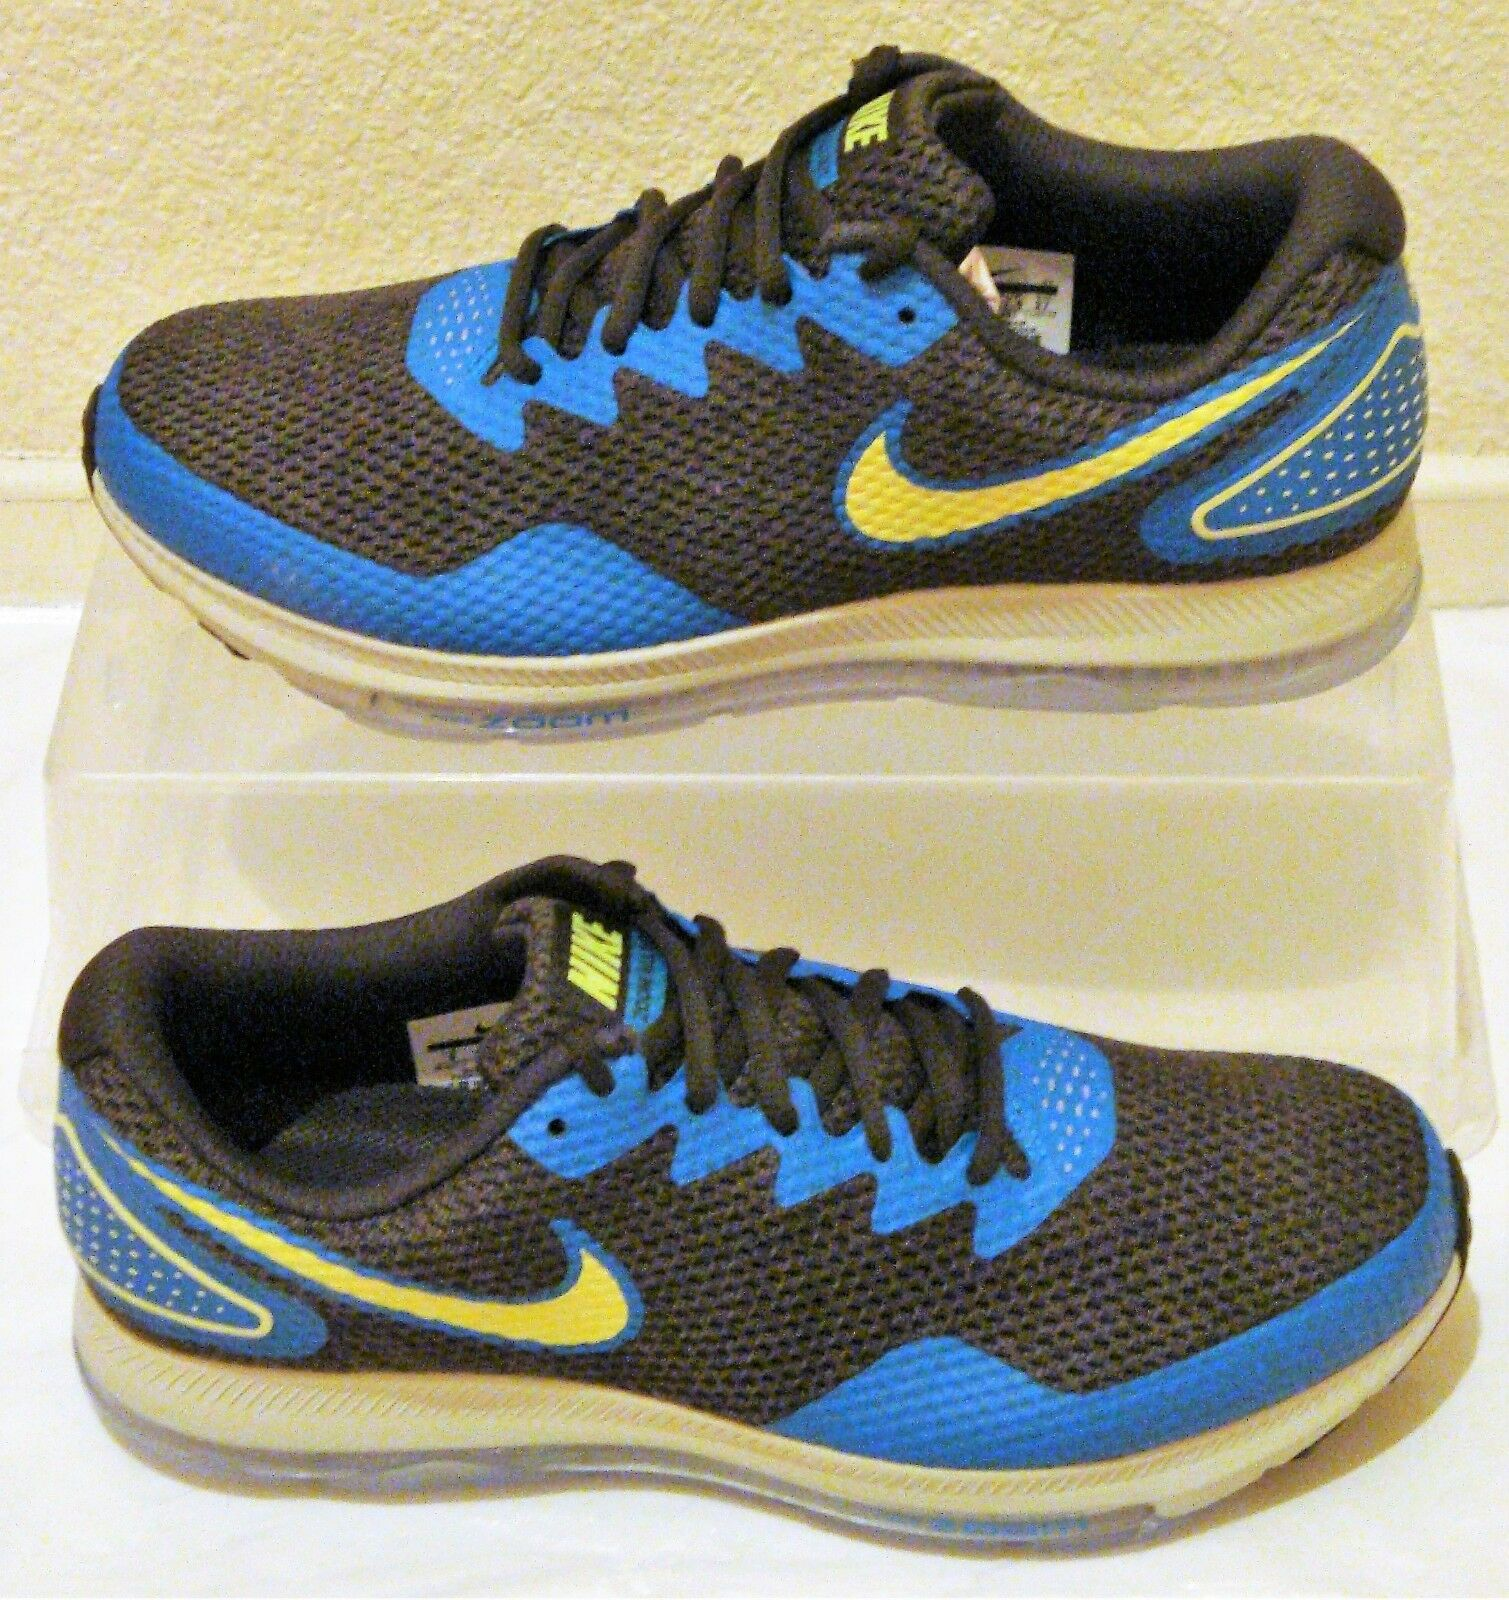 New Nike Air Zoom All Out LOW 2 Sequoia Volt Volt Volt Mens US Size 10 3bbb6a